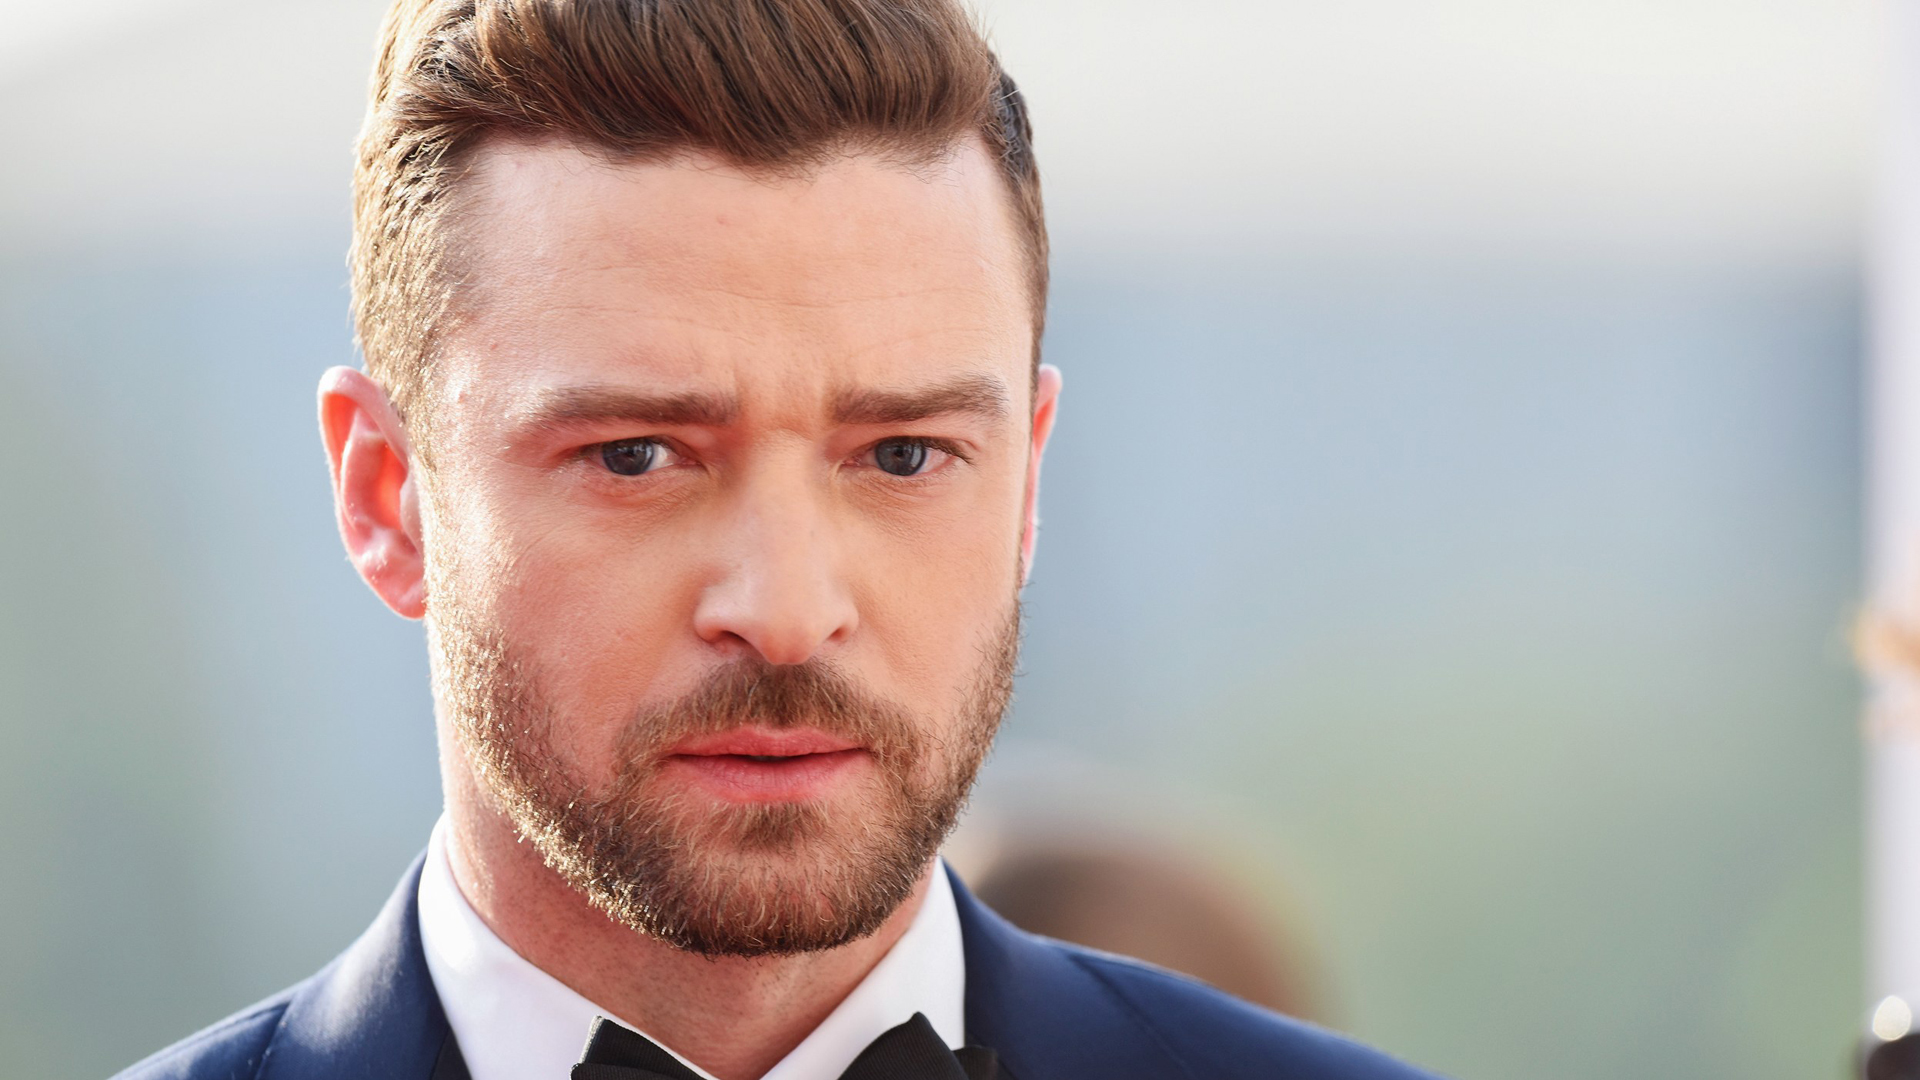 the early life and music career of justin randall timberlake Early life timberlake was born in memphis, tennessee, the son of lynn harless (née bomar) and randall timberlake [2] he claims english american ancestry and some american indian ancestry, possibly through unconfirmed descent from henry timberlake.